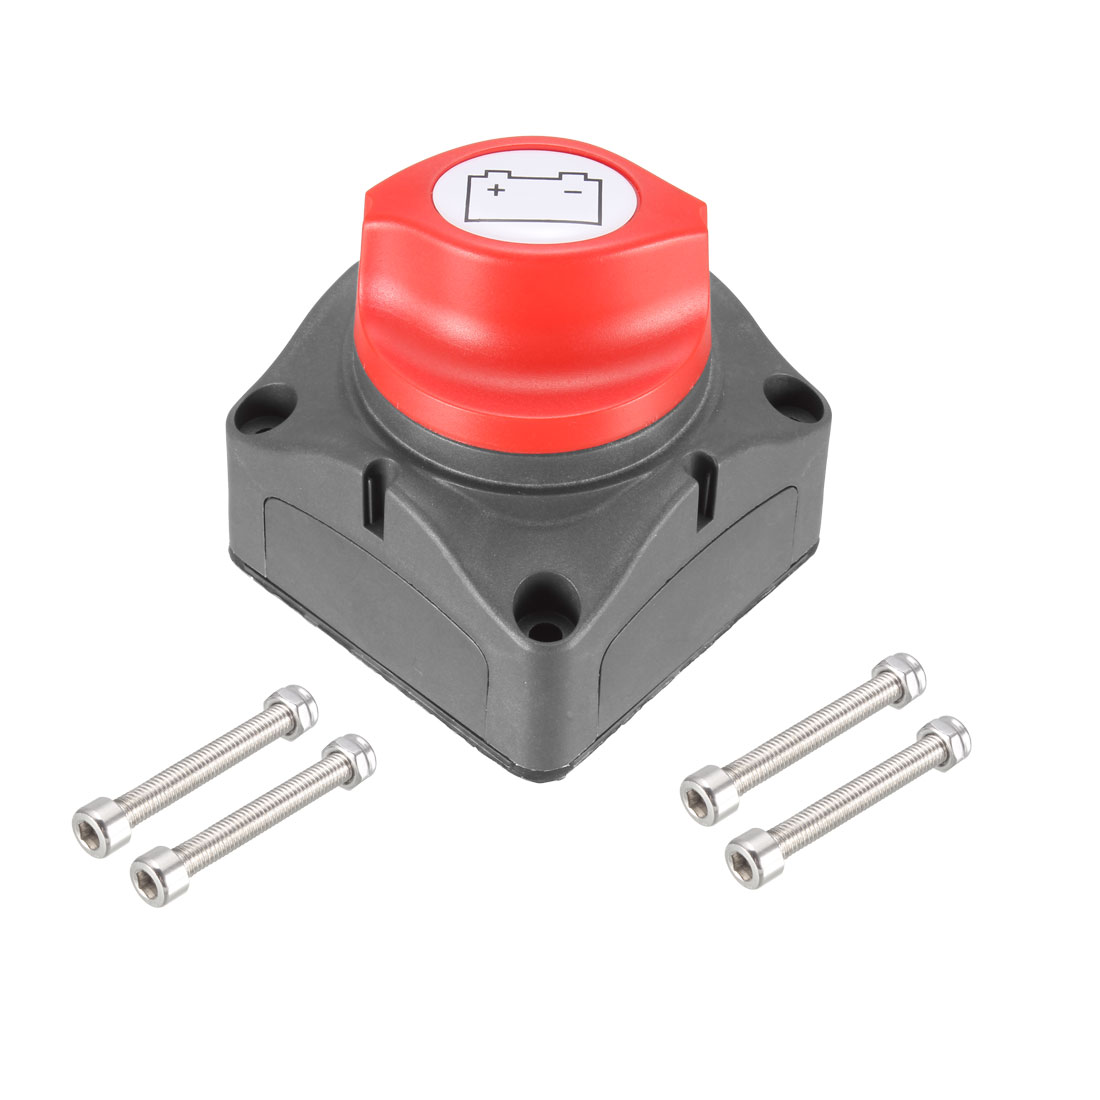 Battery Switch 12-24V On/Off Power Cut Master Disconnect Isolator with Side Pad